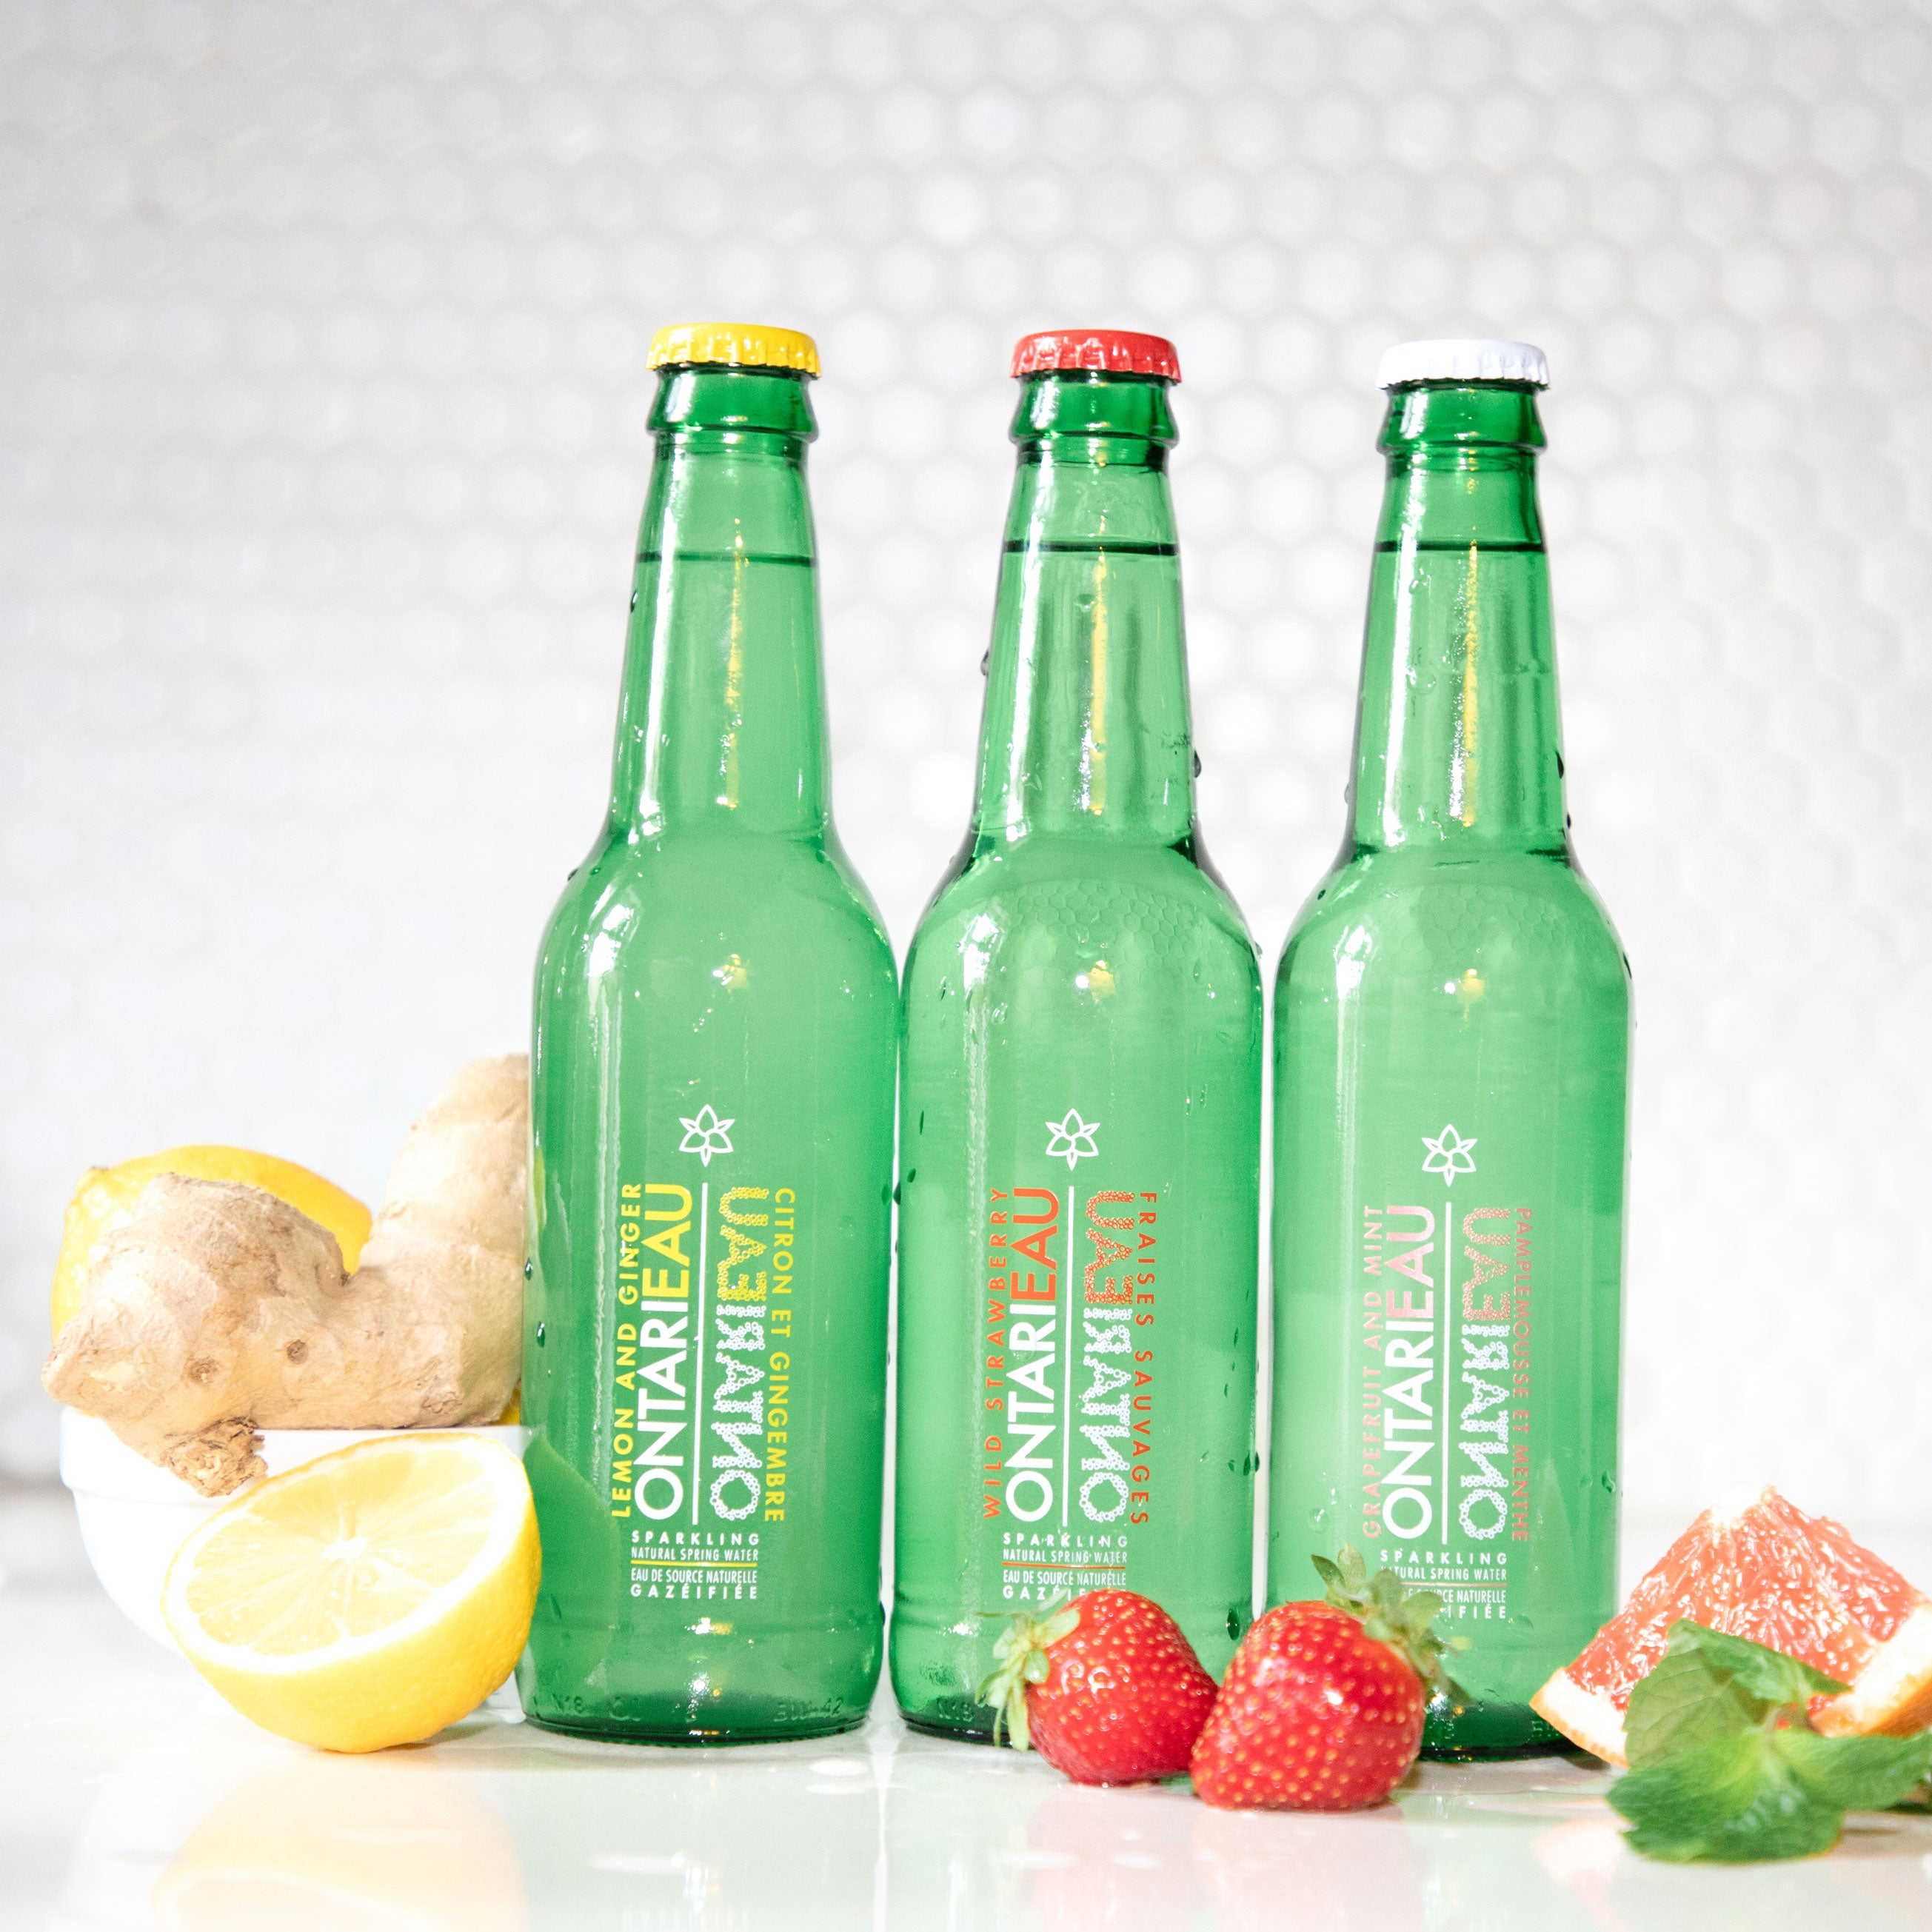 Wild Strawberry Ontarieau Sparkling Spring Water